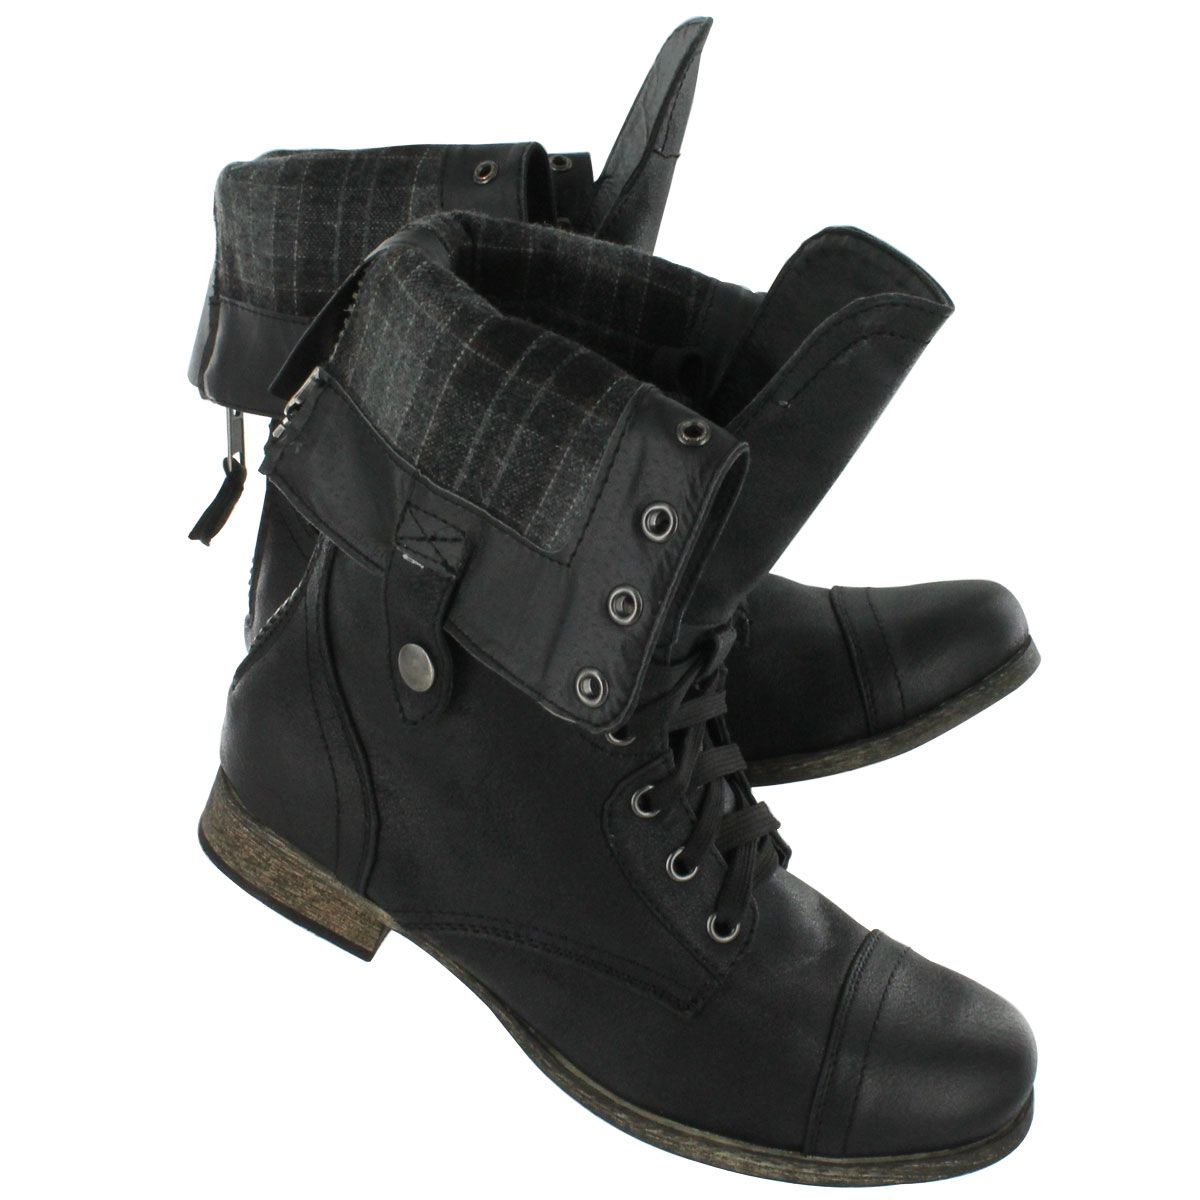 Very Cheap Online Fast Delivery Womens Warme Plattform Combat Boots Bianco Free Shipping Affordable yQeUTMvw